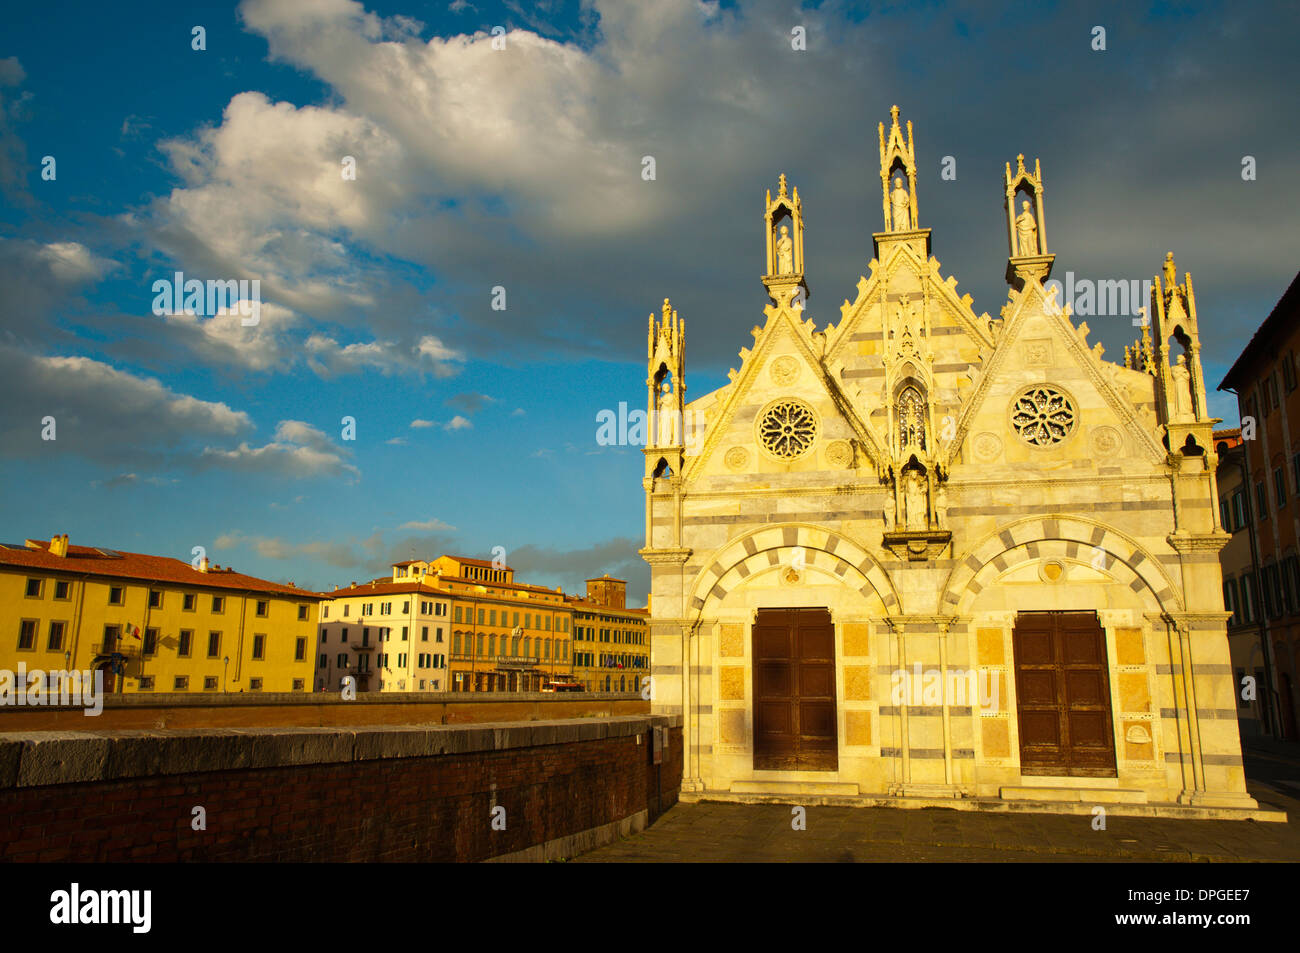 Chiesa di Santa Maria della Spina Gothic style church (1230) Pisa city Tuscany region Italy Europe - Stock Image